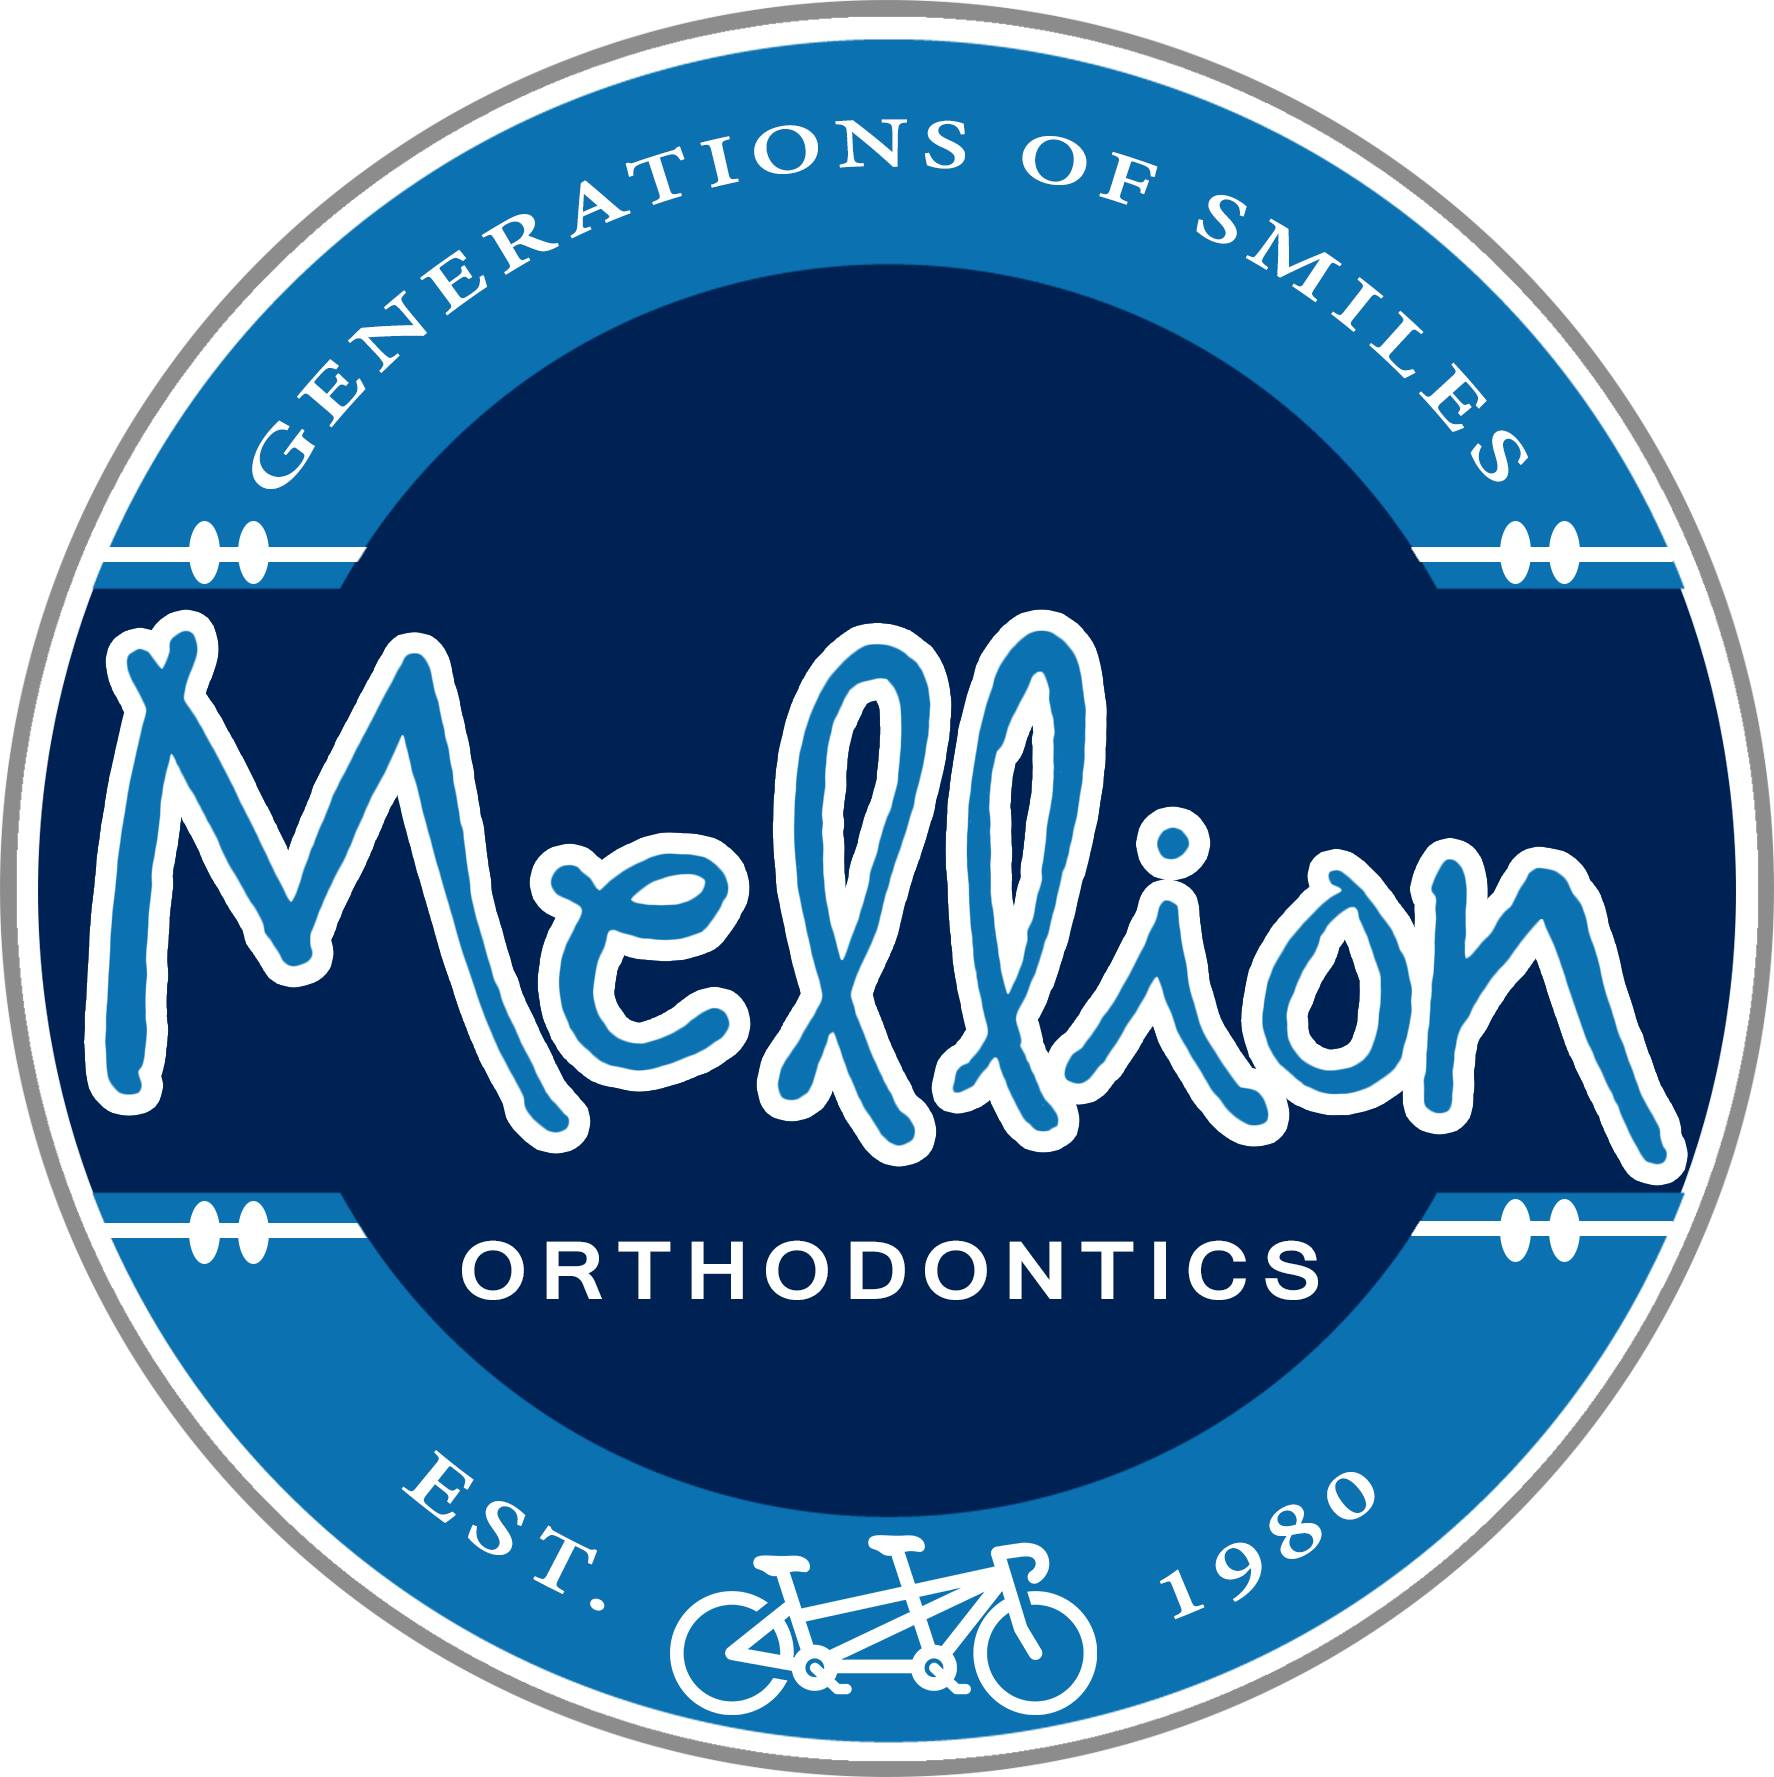 Mellion Orthodontics